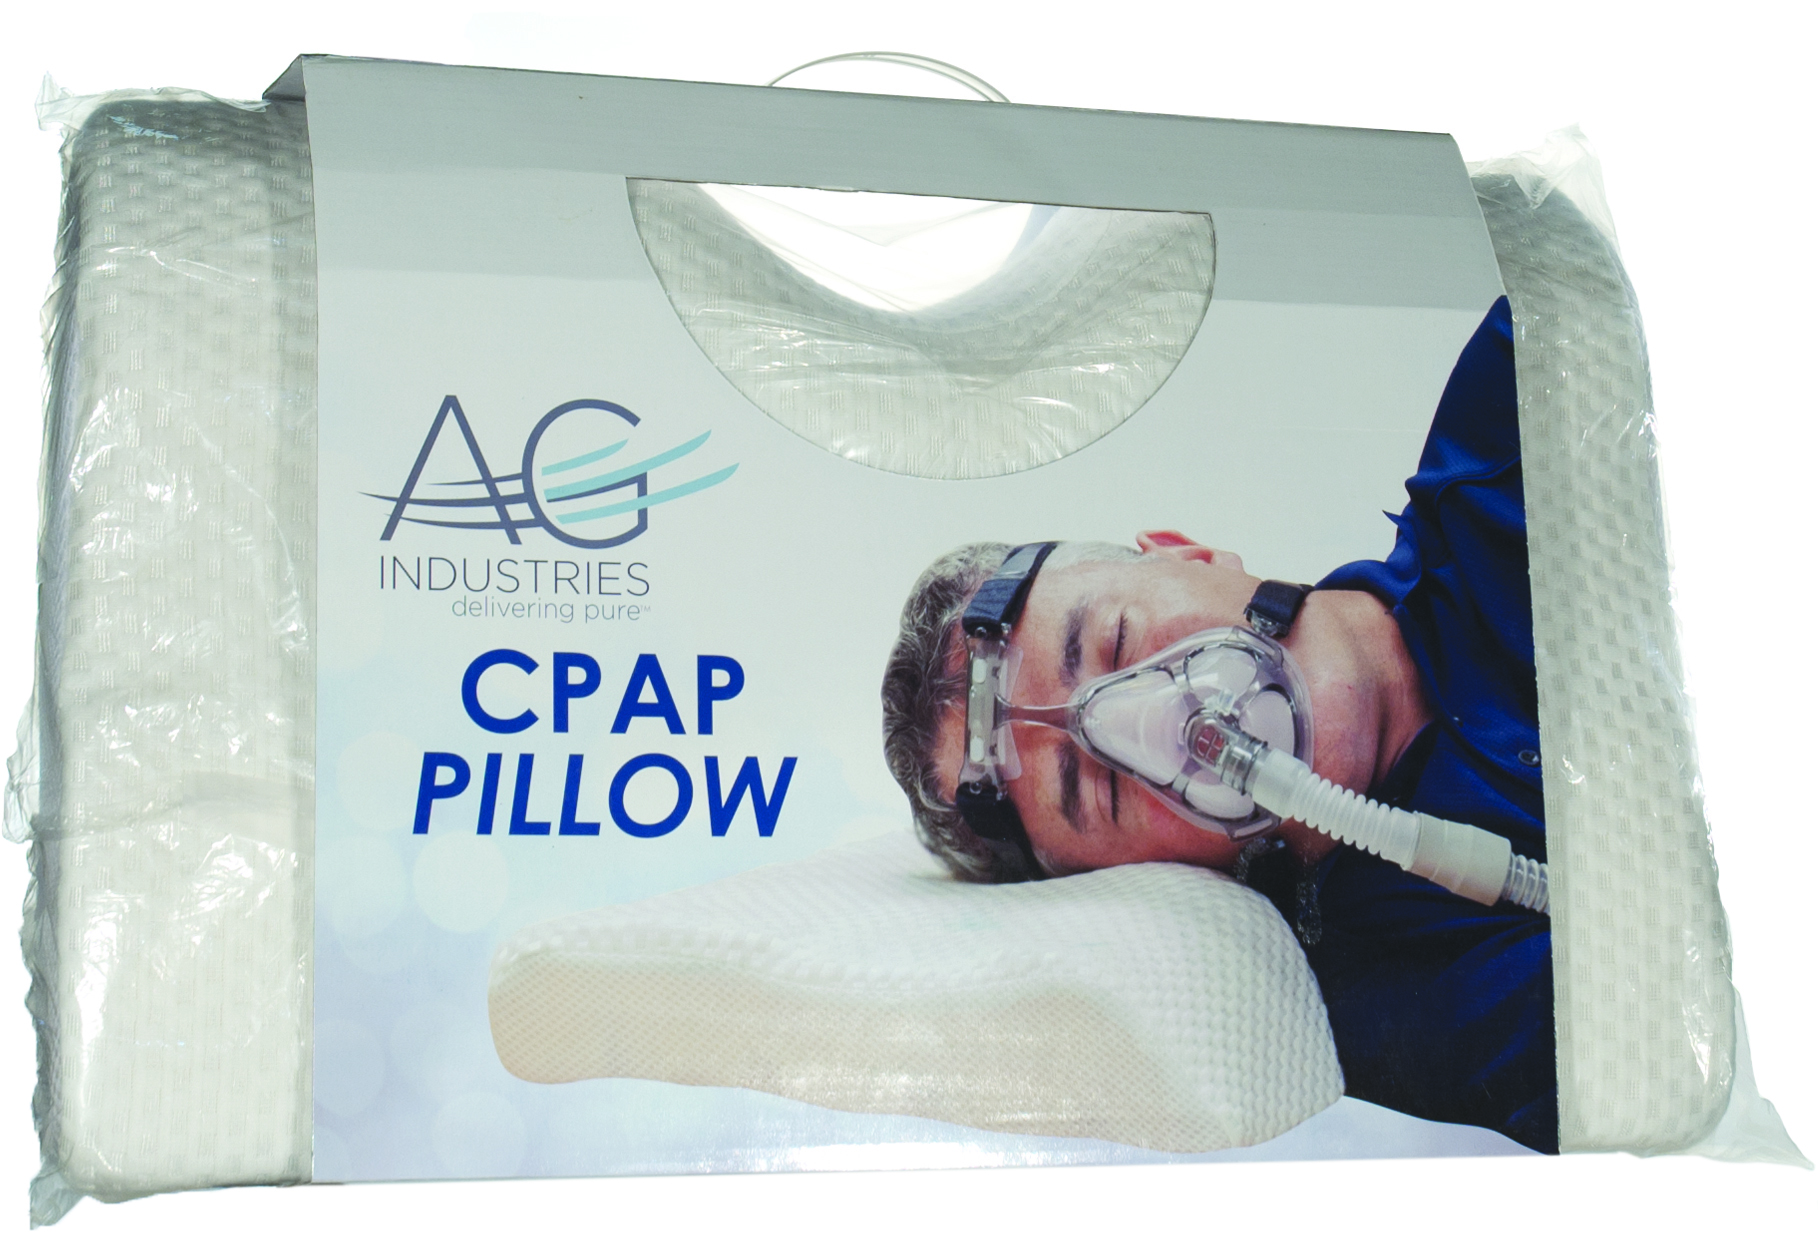 The CPAP Pillow